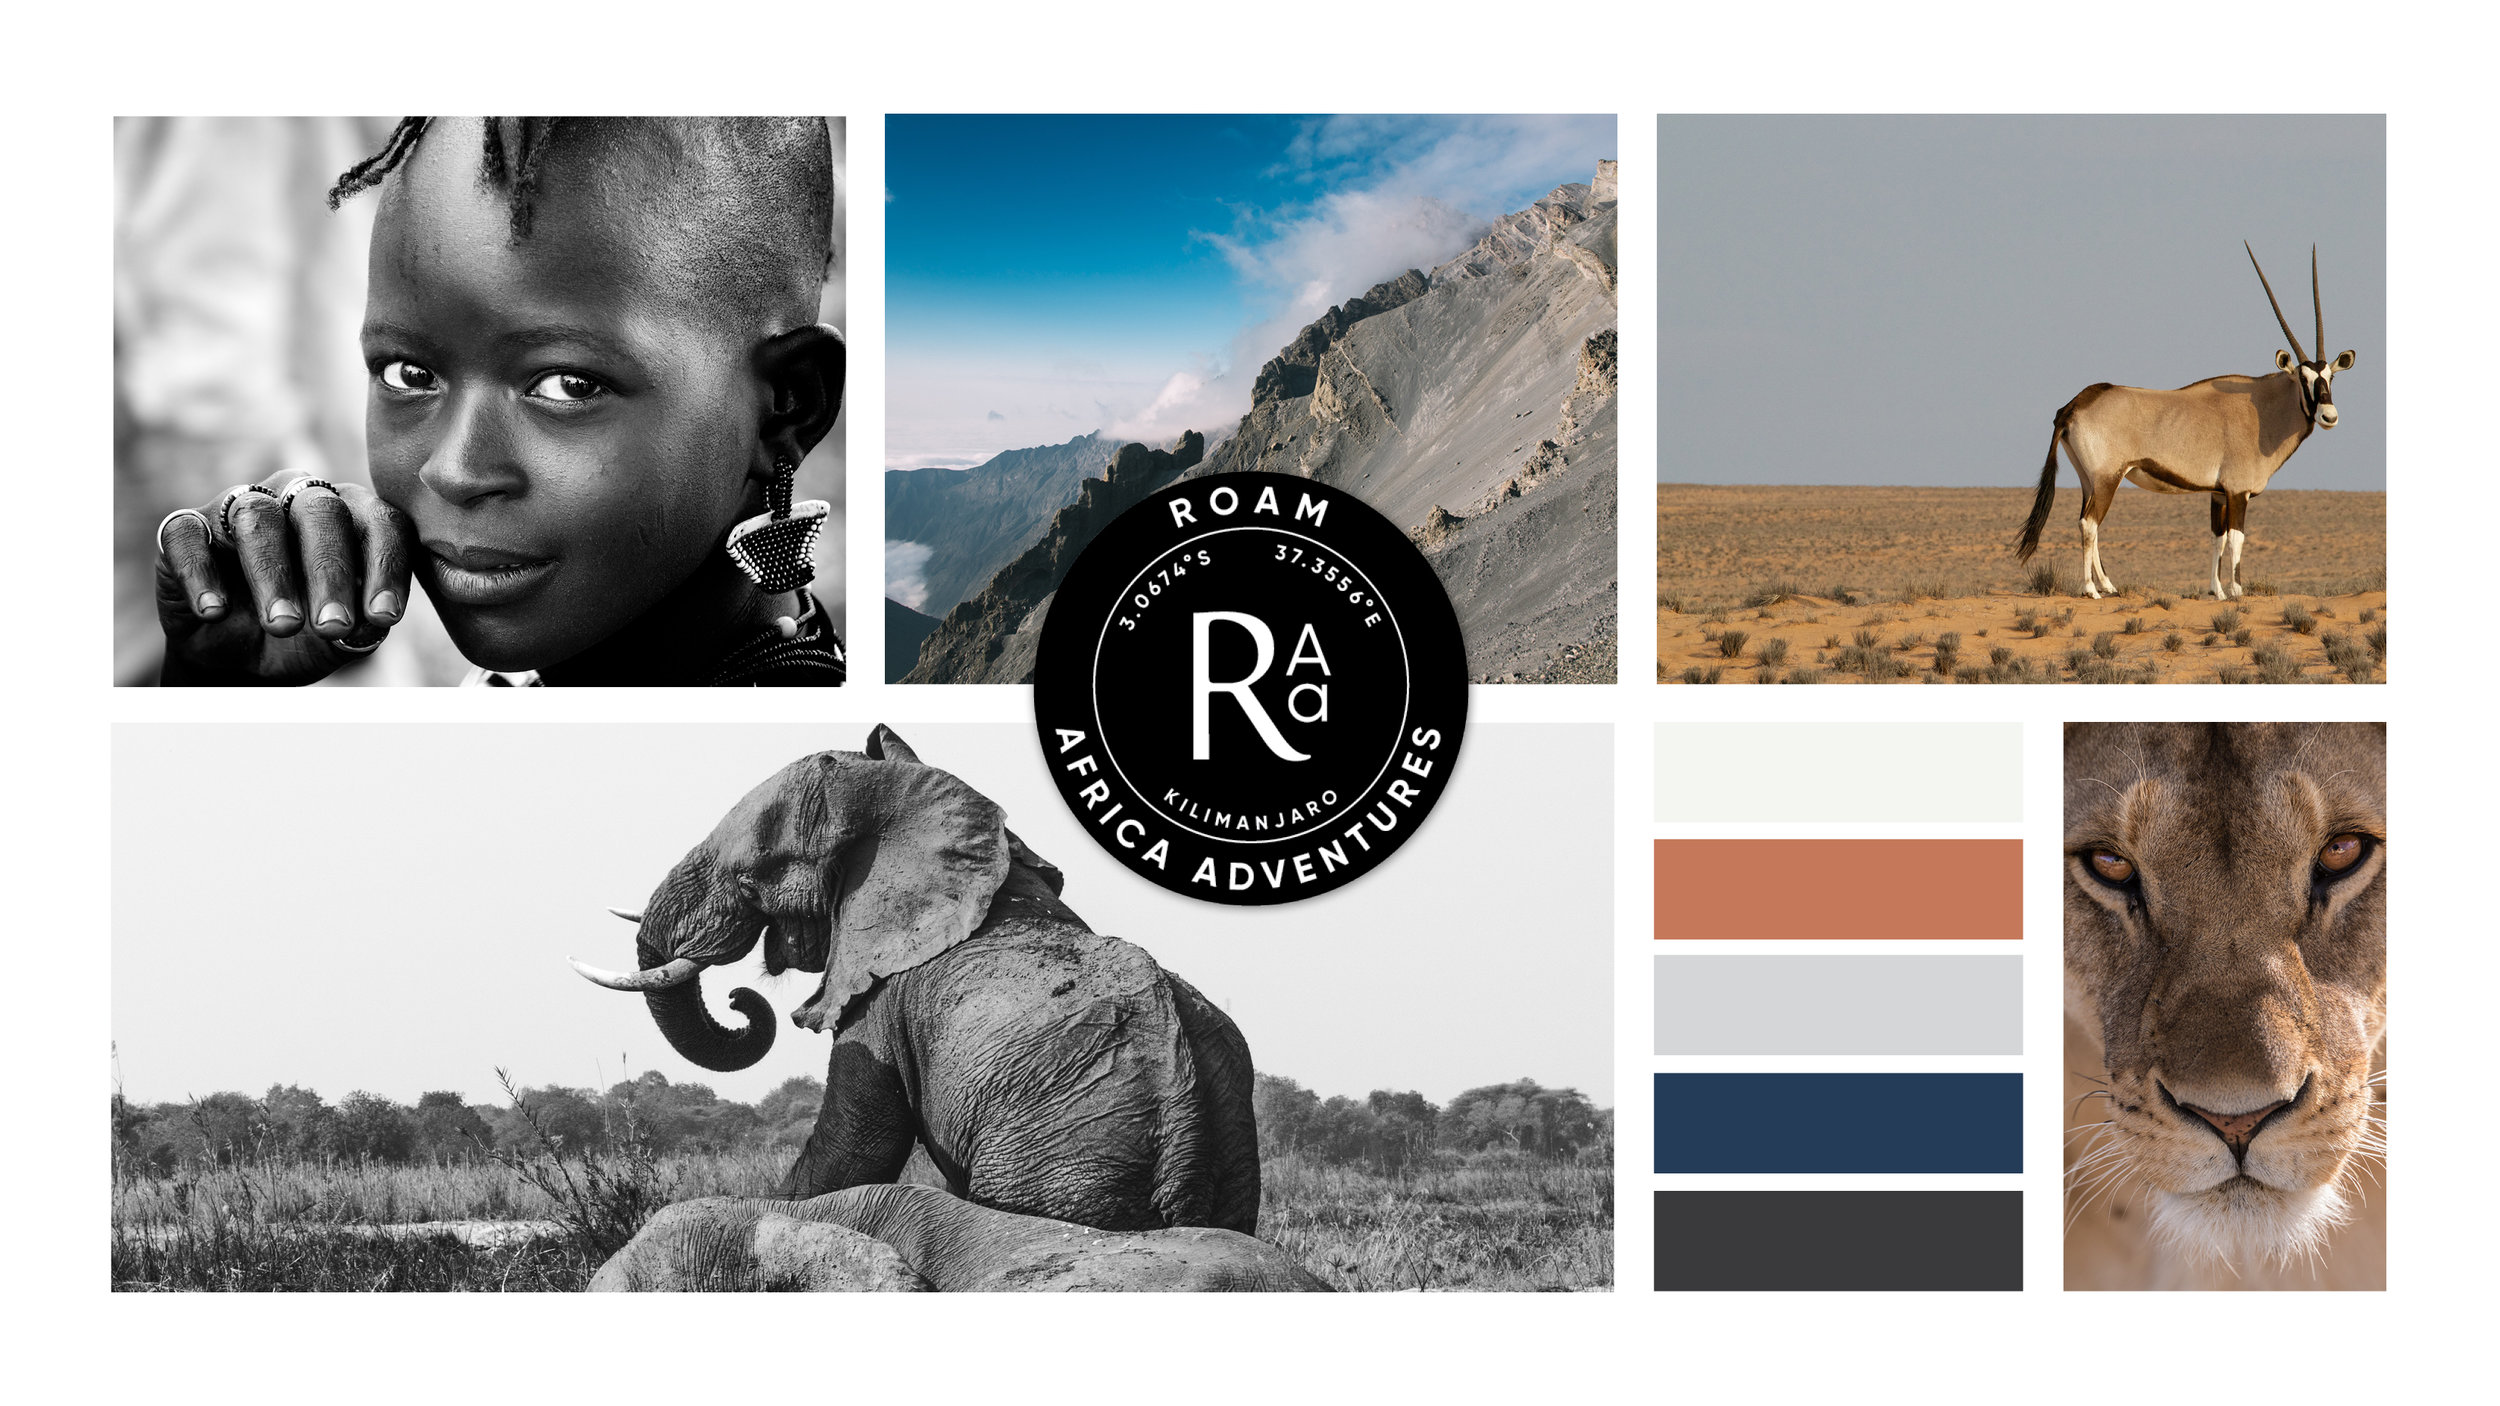 Completed in 2019, Graphic Design projects for Roam Africa Adventures (RAA)  included logo design, supporting assets, marketing materials and squarespace website.